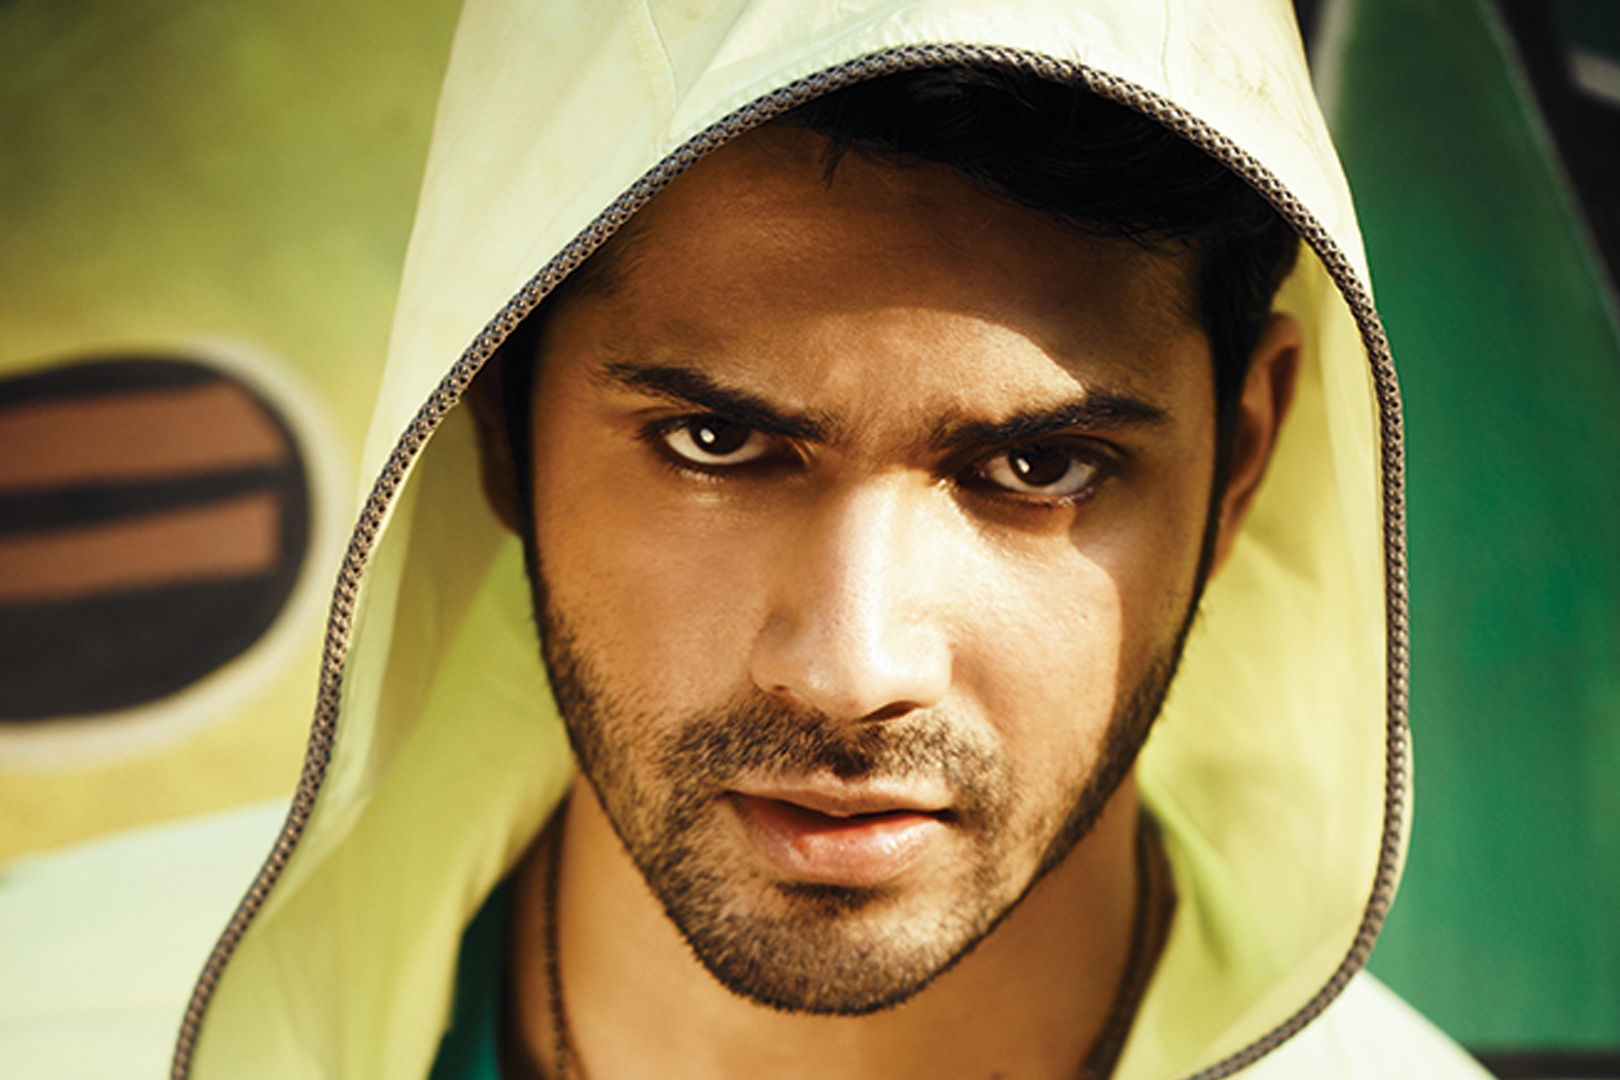 Dhawan has the goods. His cheeky, arrogant pop-star charisma reminds one a young Salman Khan